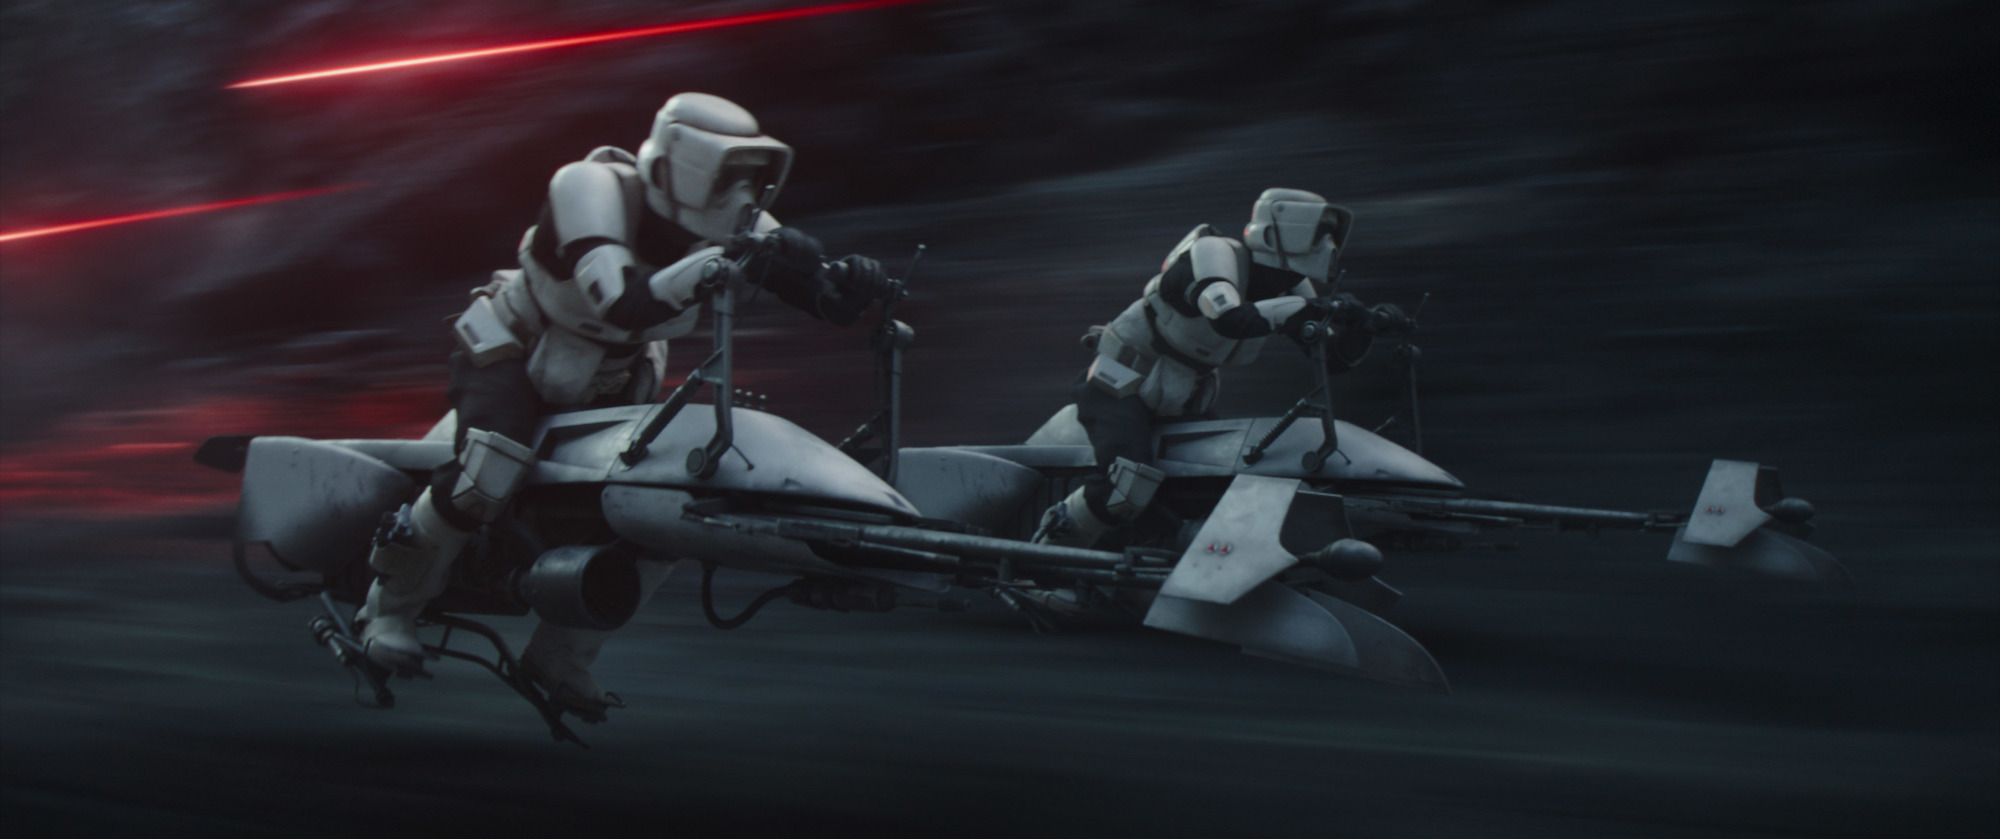 Stormtroopers race after Mando in 'The Mandalorian' Season 2